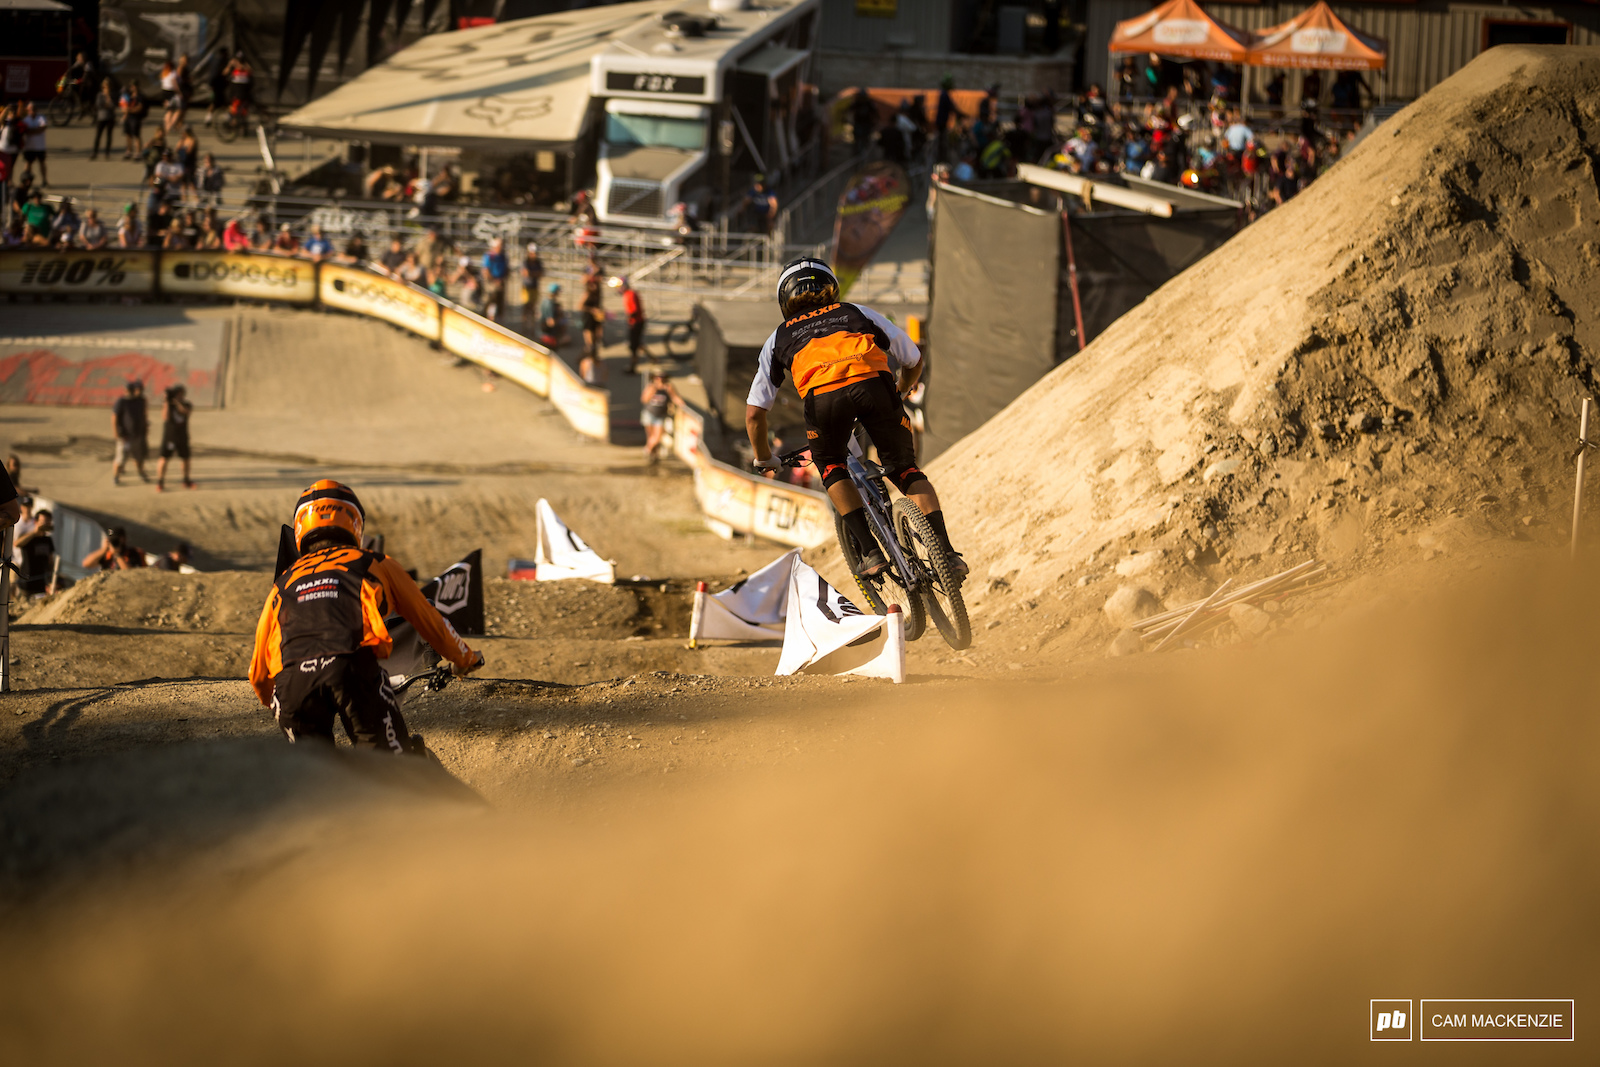 Doing it down under styles. Connor Fearon and Graeme Mudd duelling in the dust